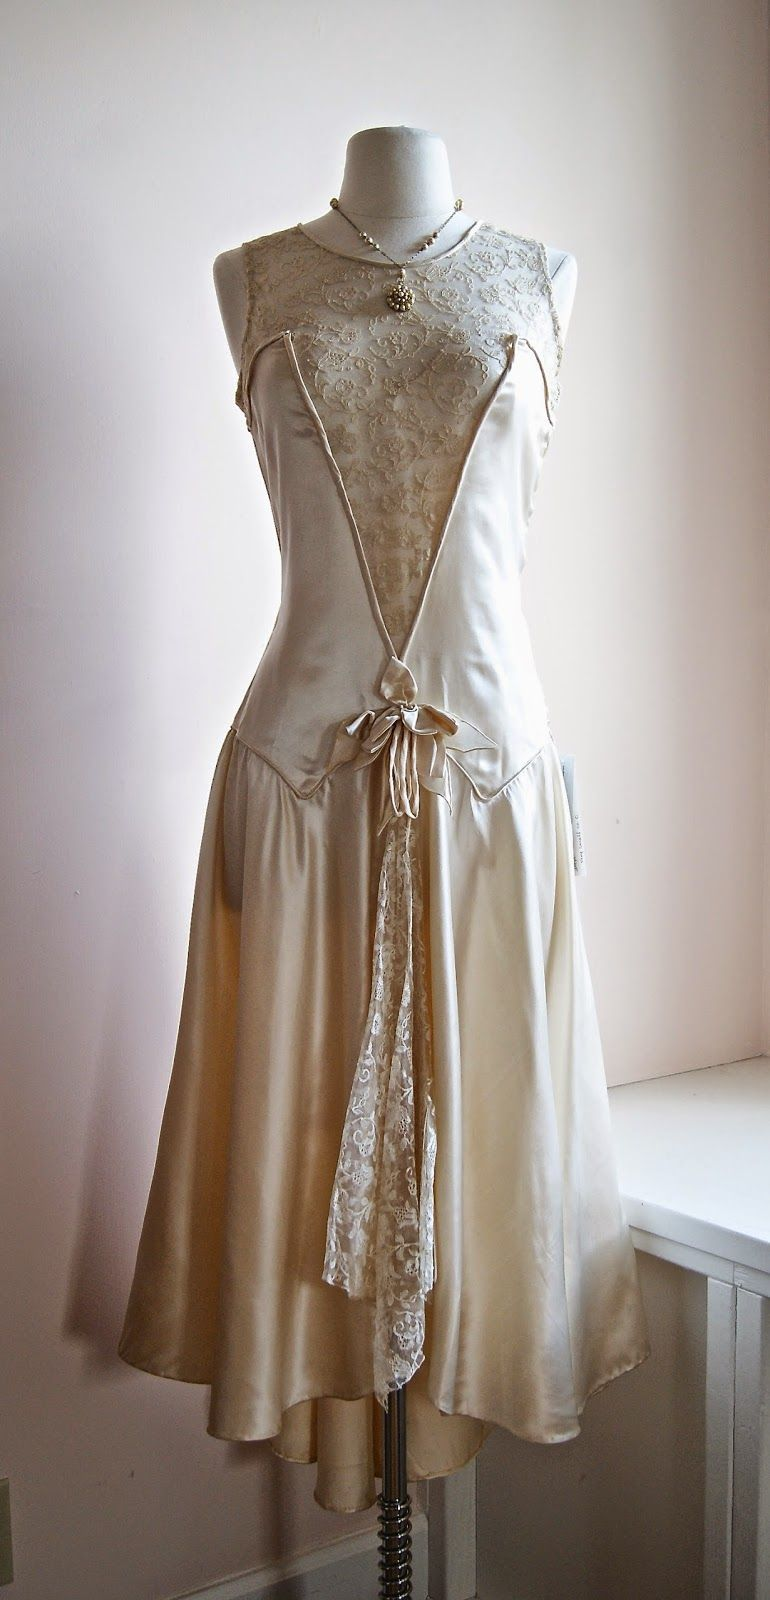 1920s Wedding Dress At Xtabay Vintage Clothing Boutique